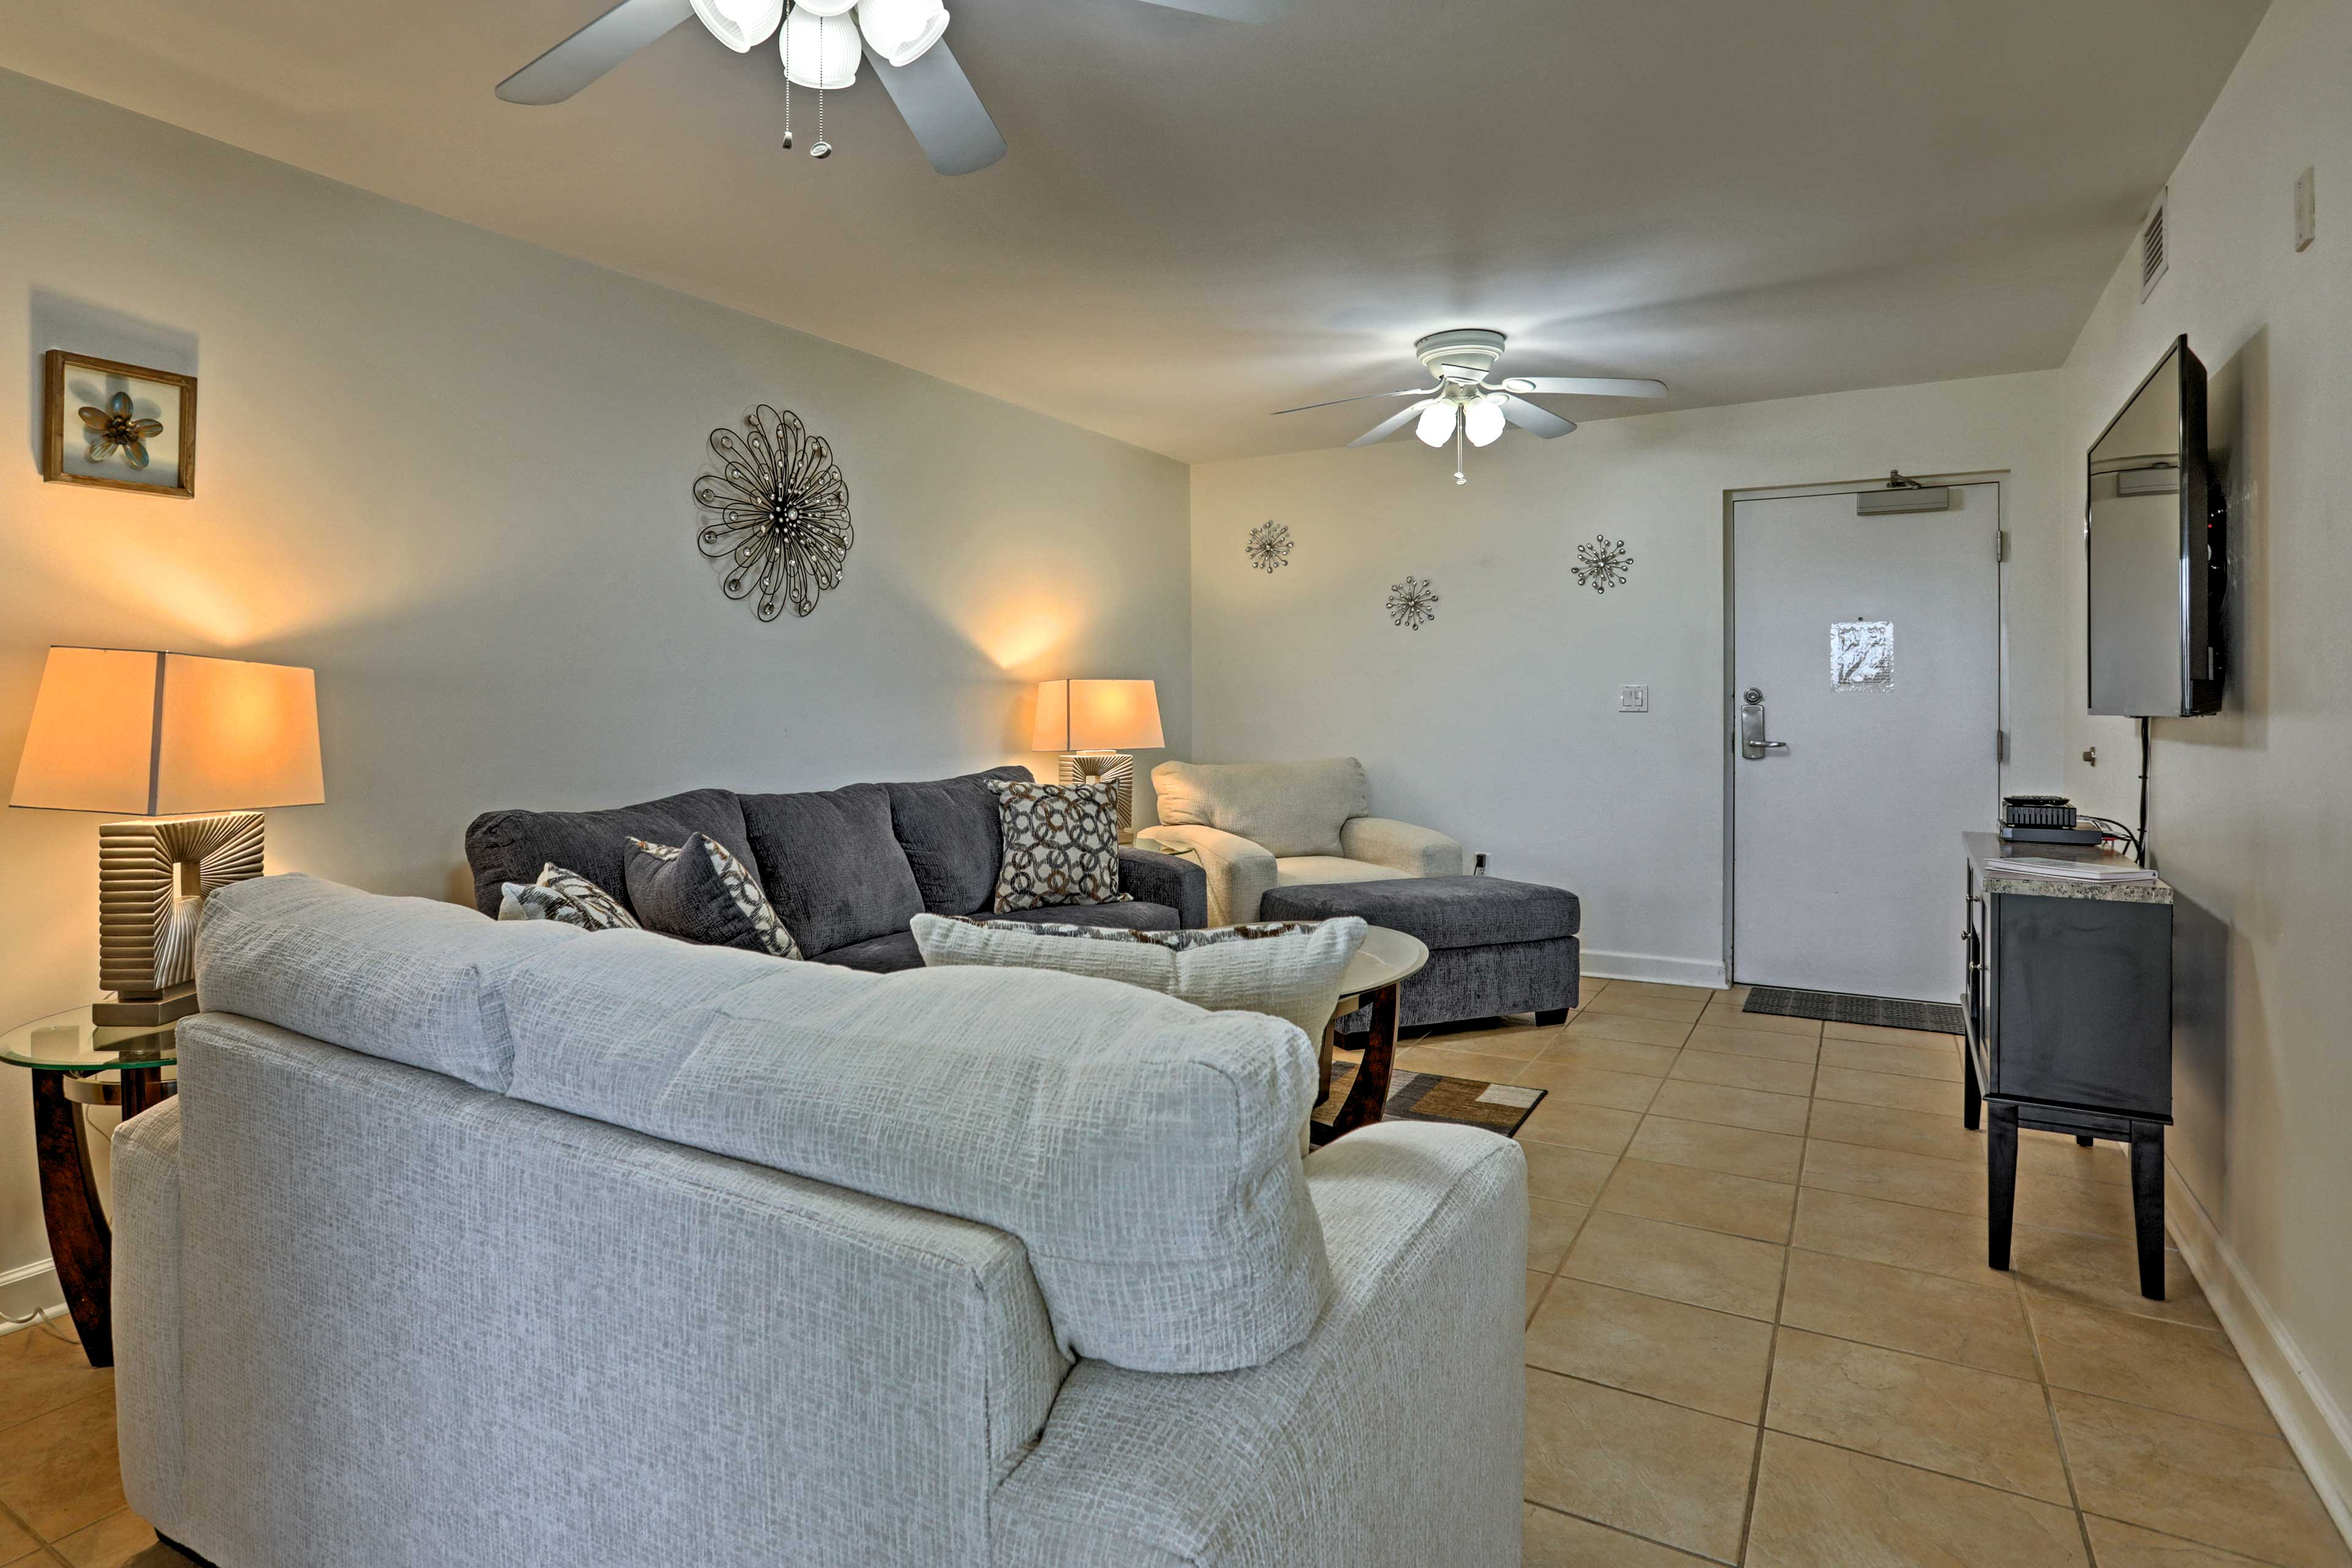 The living room is equipped with a flat-screen cable TV.